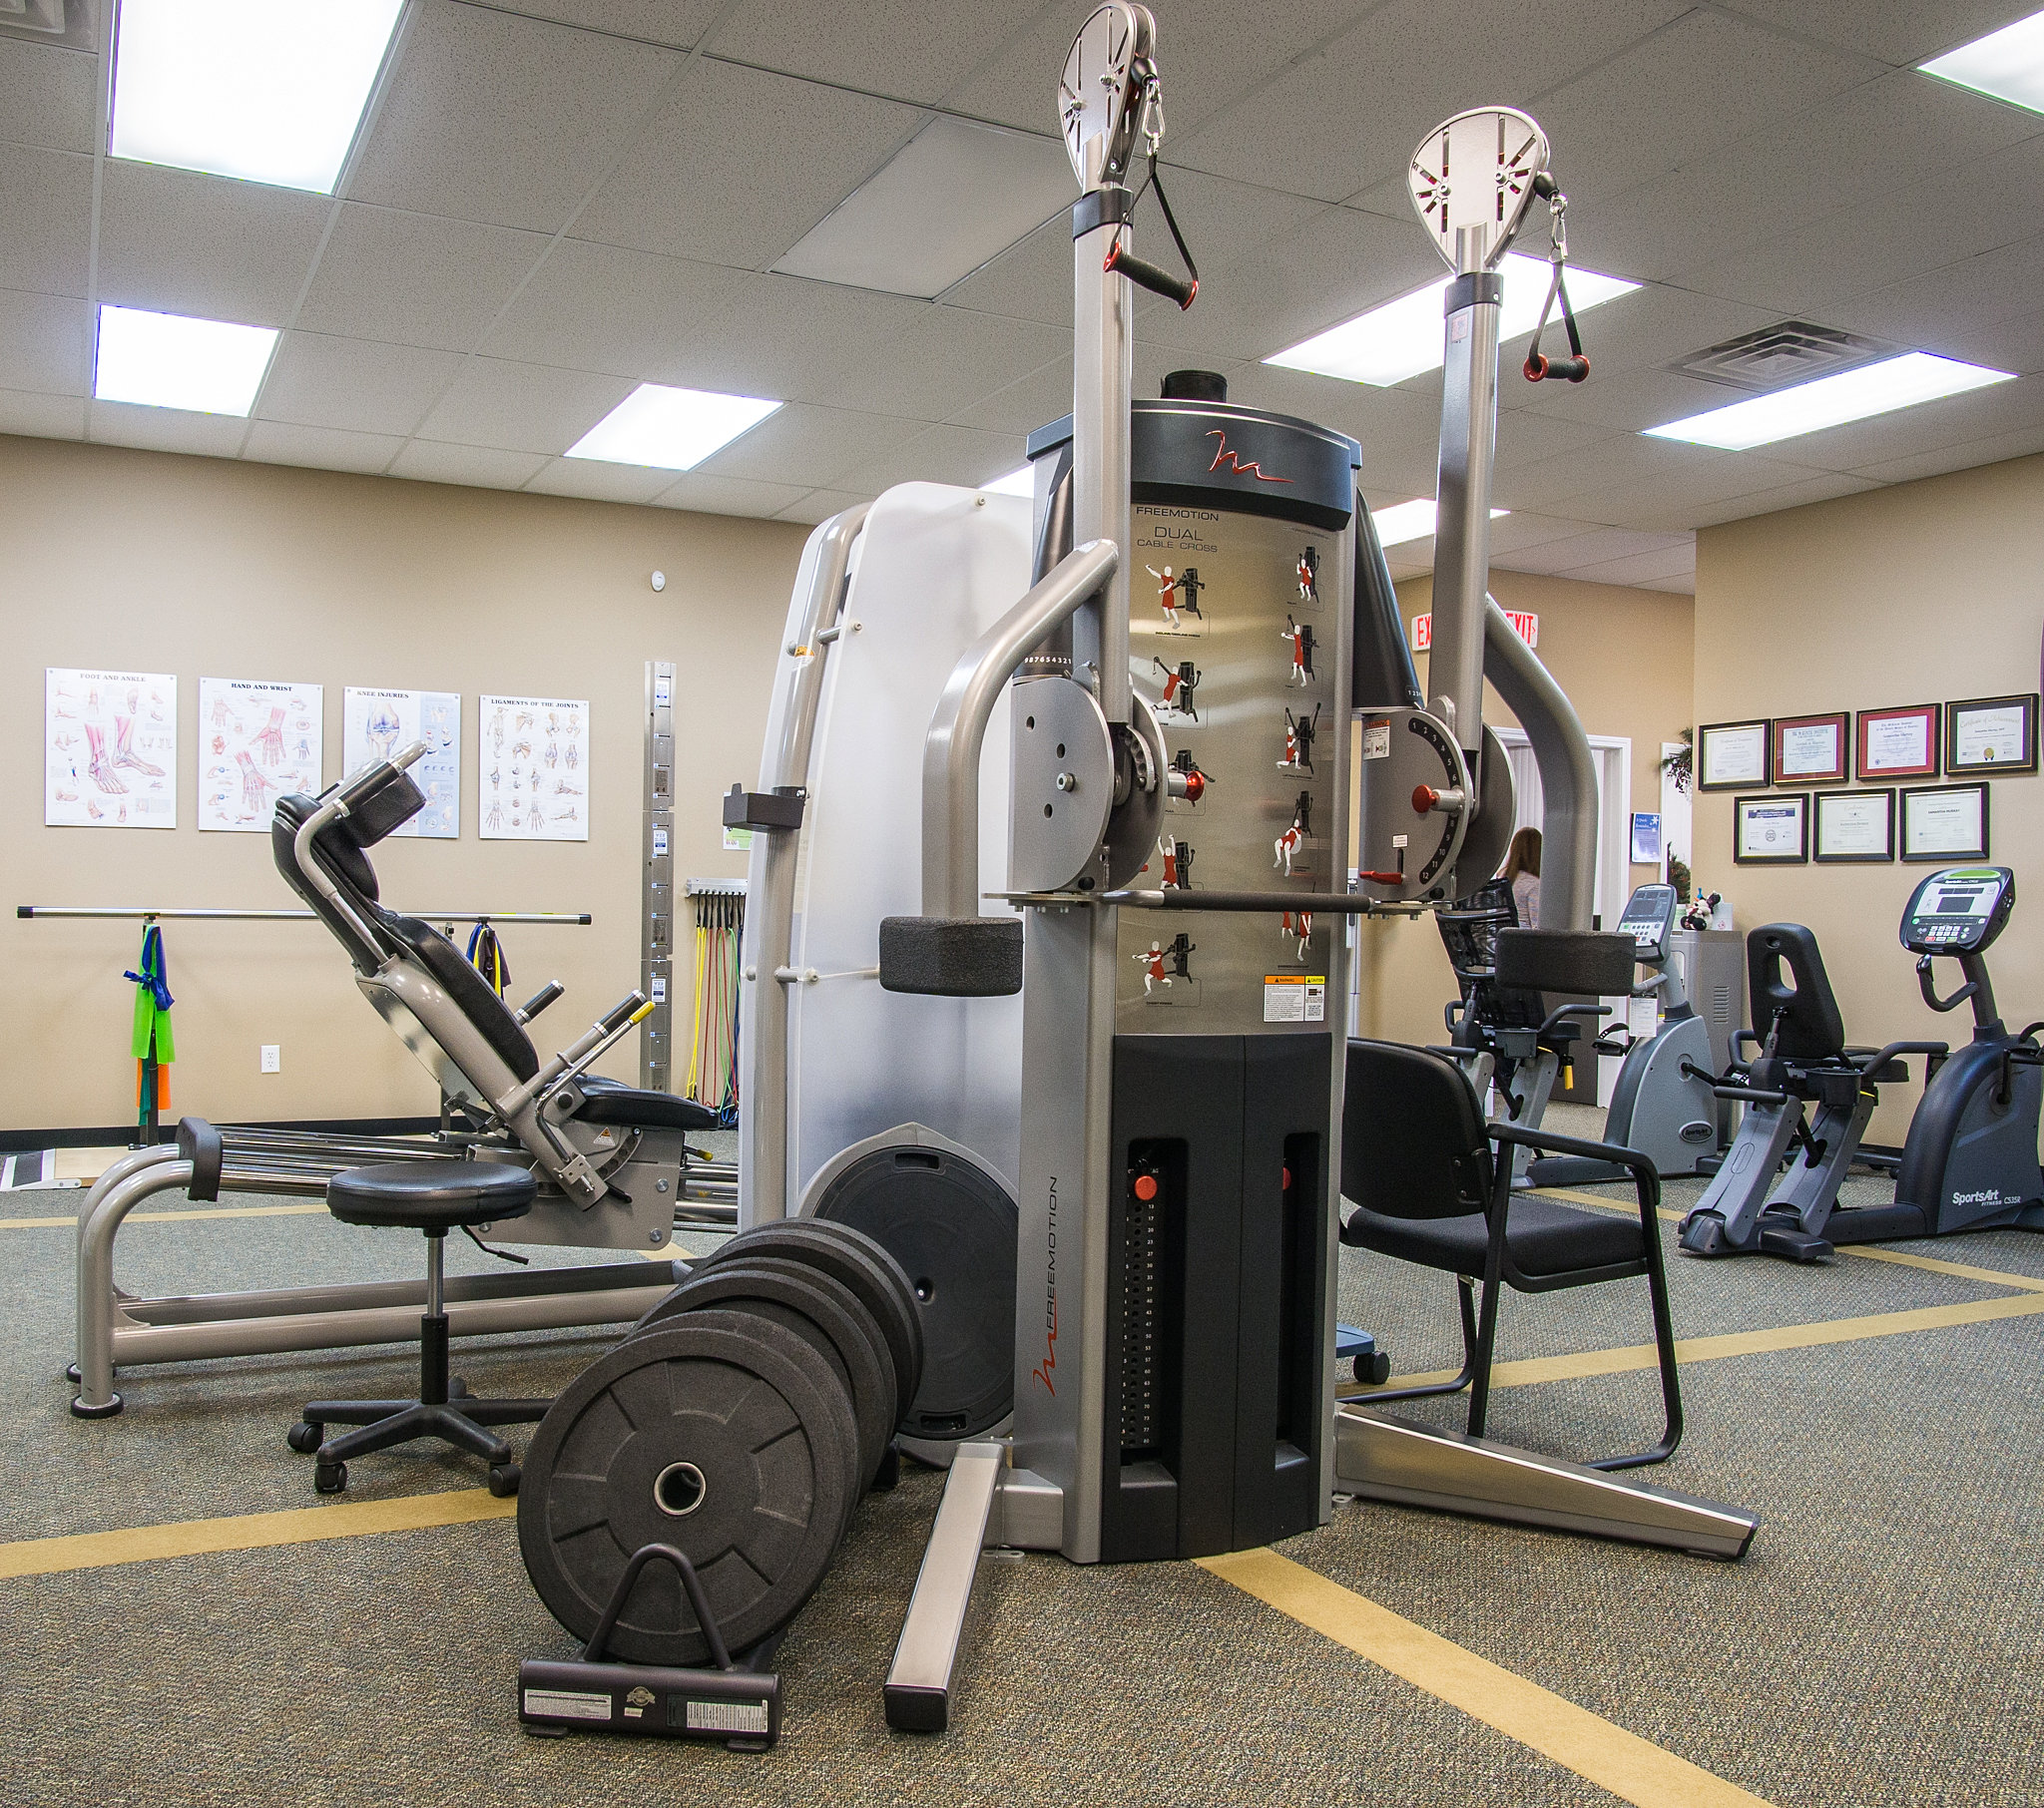 Equipment exercise physical therapy -  Brostrom Pt Equipement Brostrom Patient Room Exercise Equipment